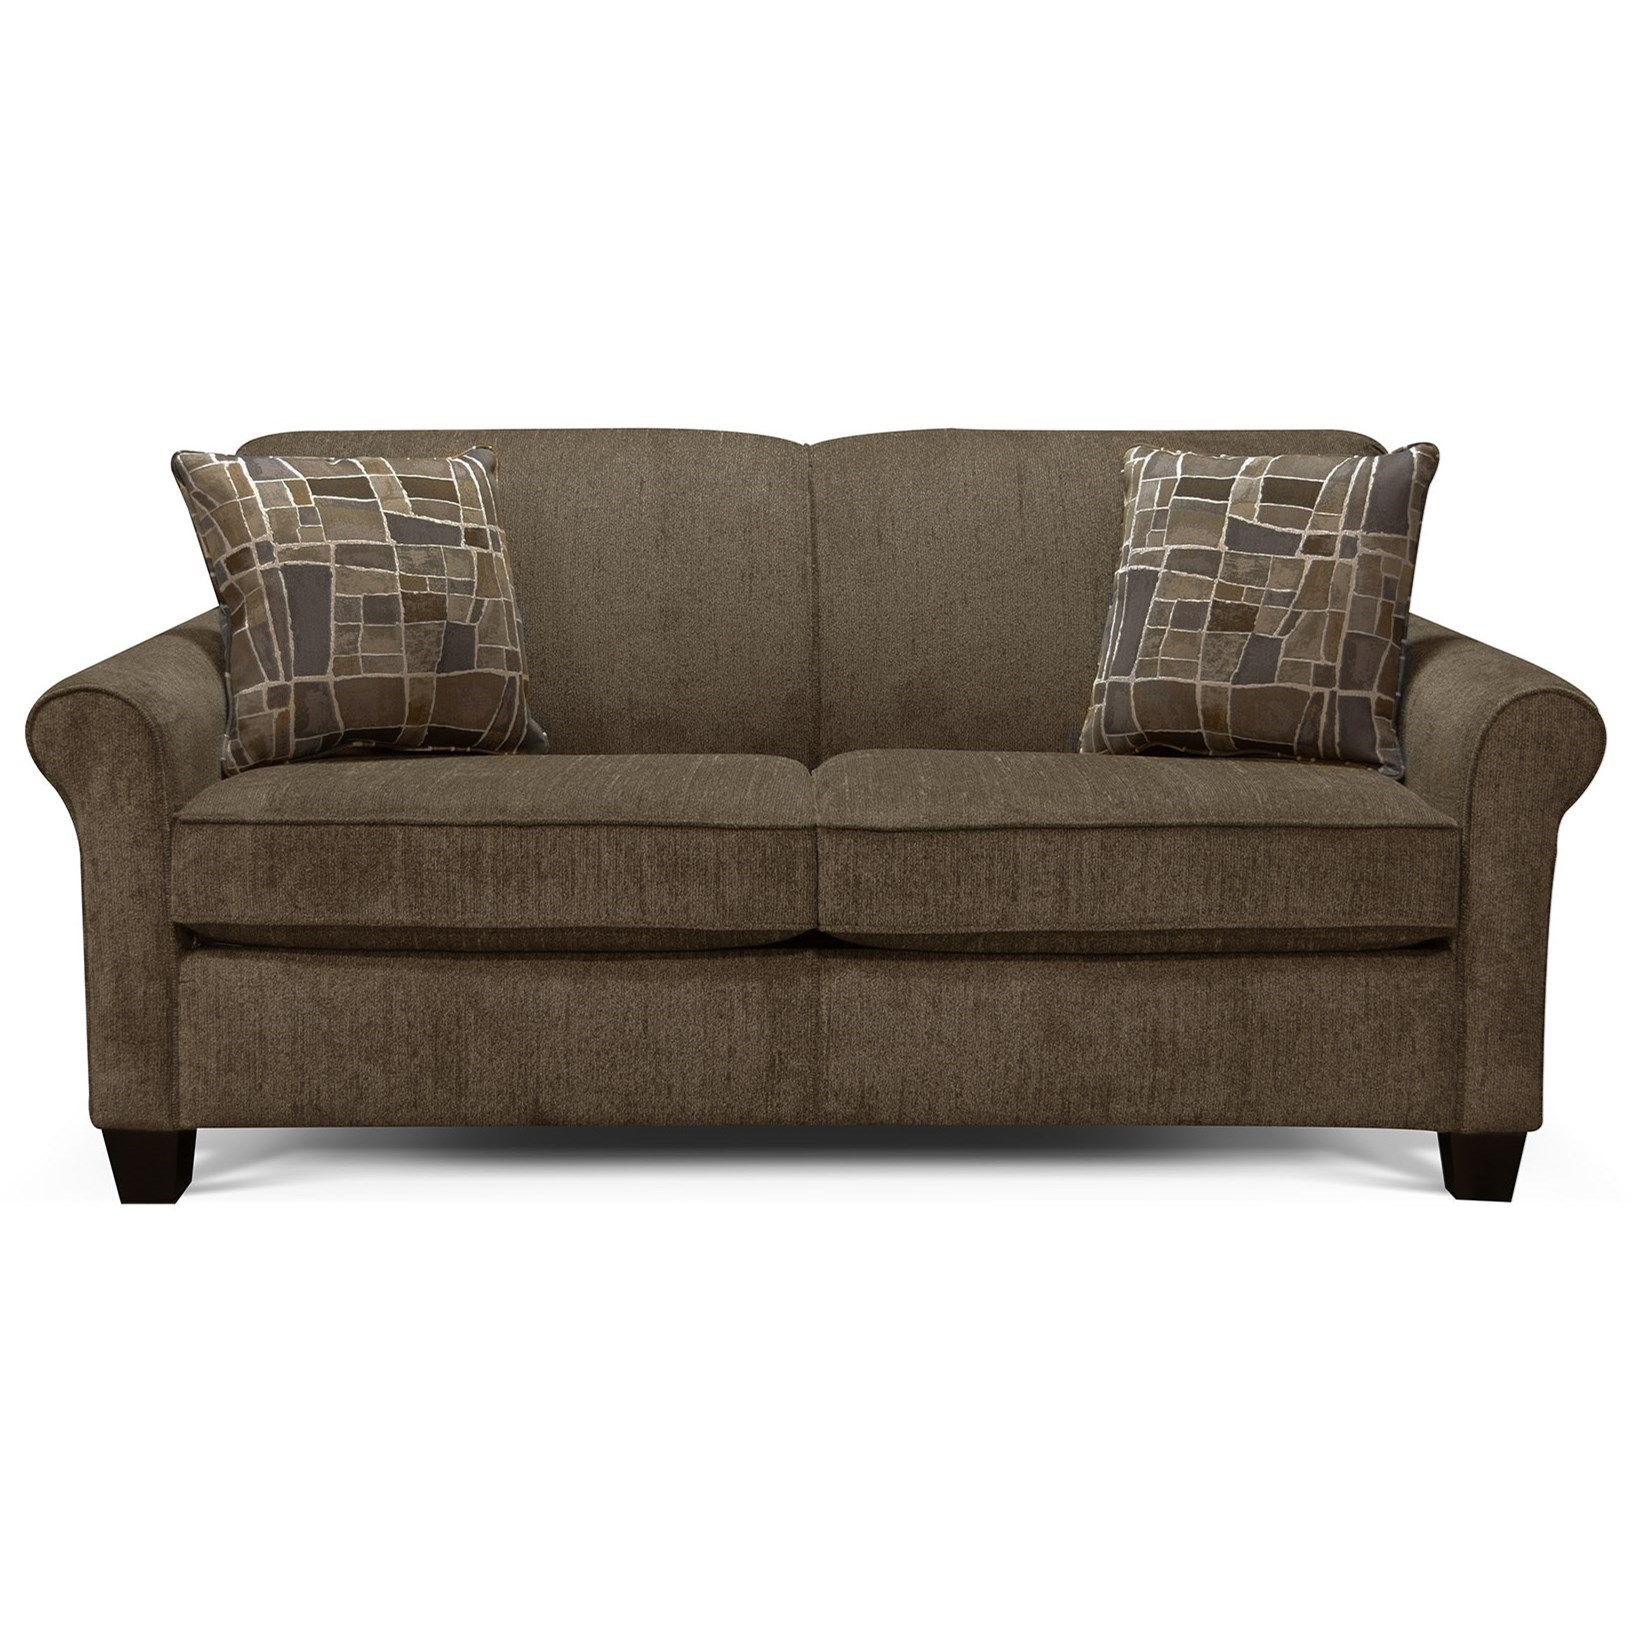 Angie  Full Sleeper Sofa by England at H.L. Stephens